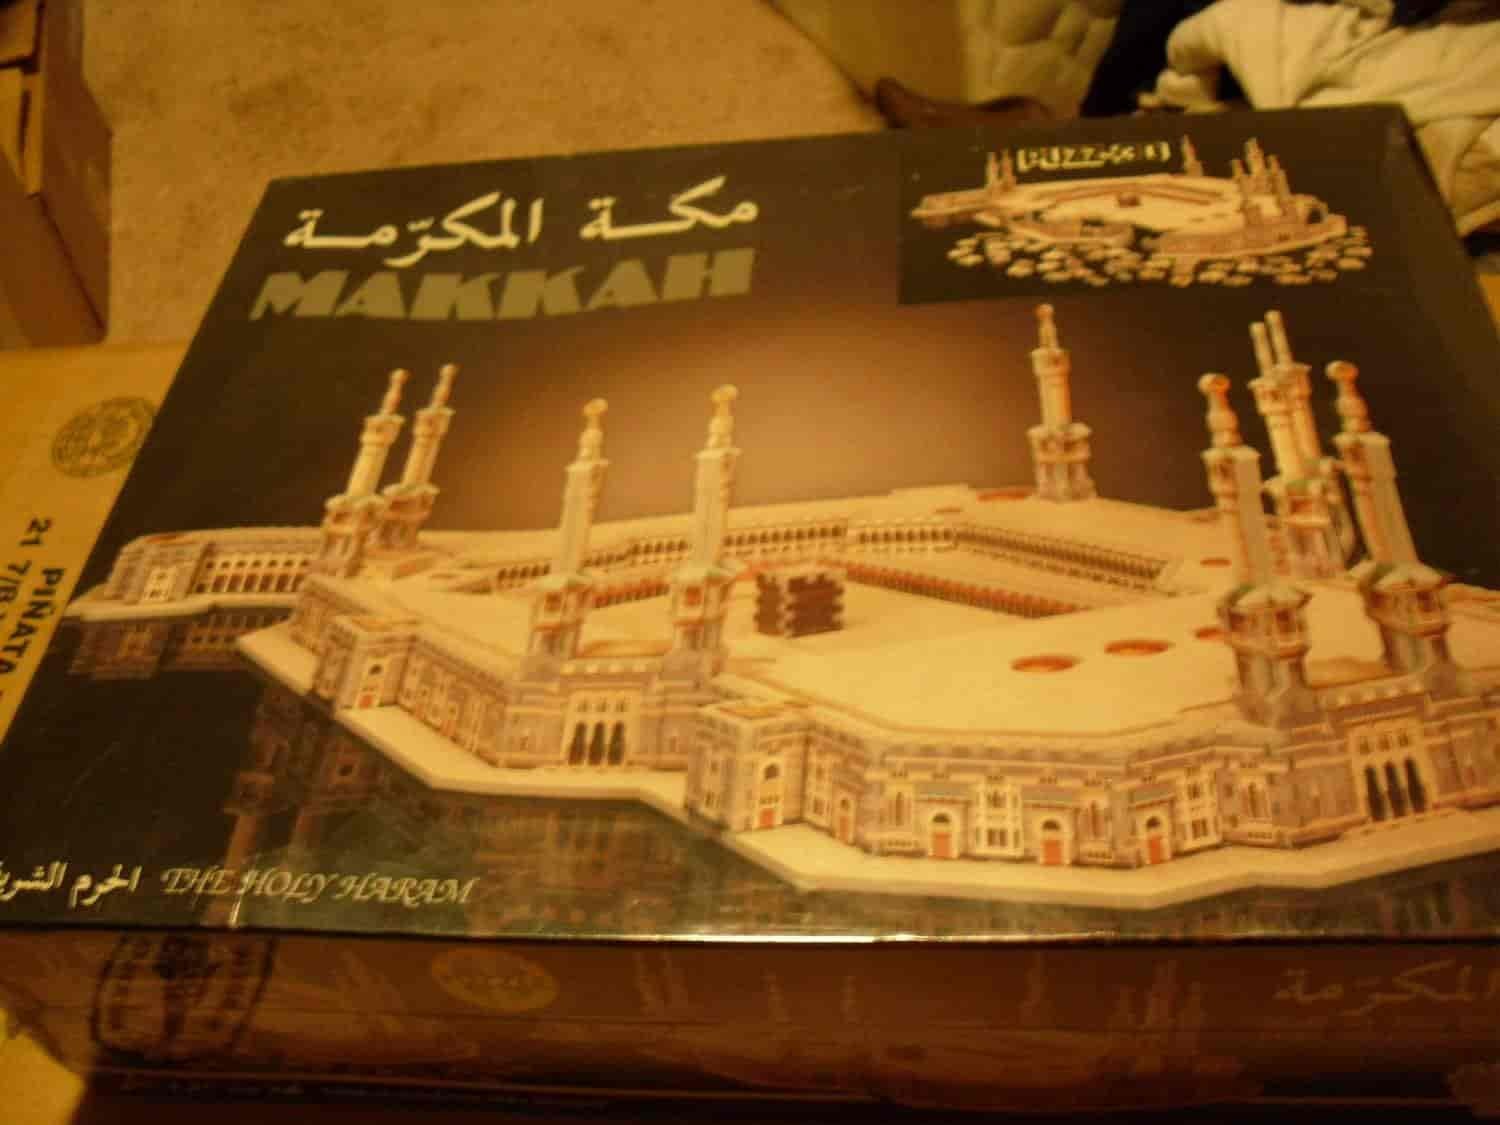 Buy Makkah: The Holy Haram (Mecca) Puzz-3D Puzzle, Features